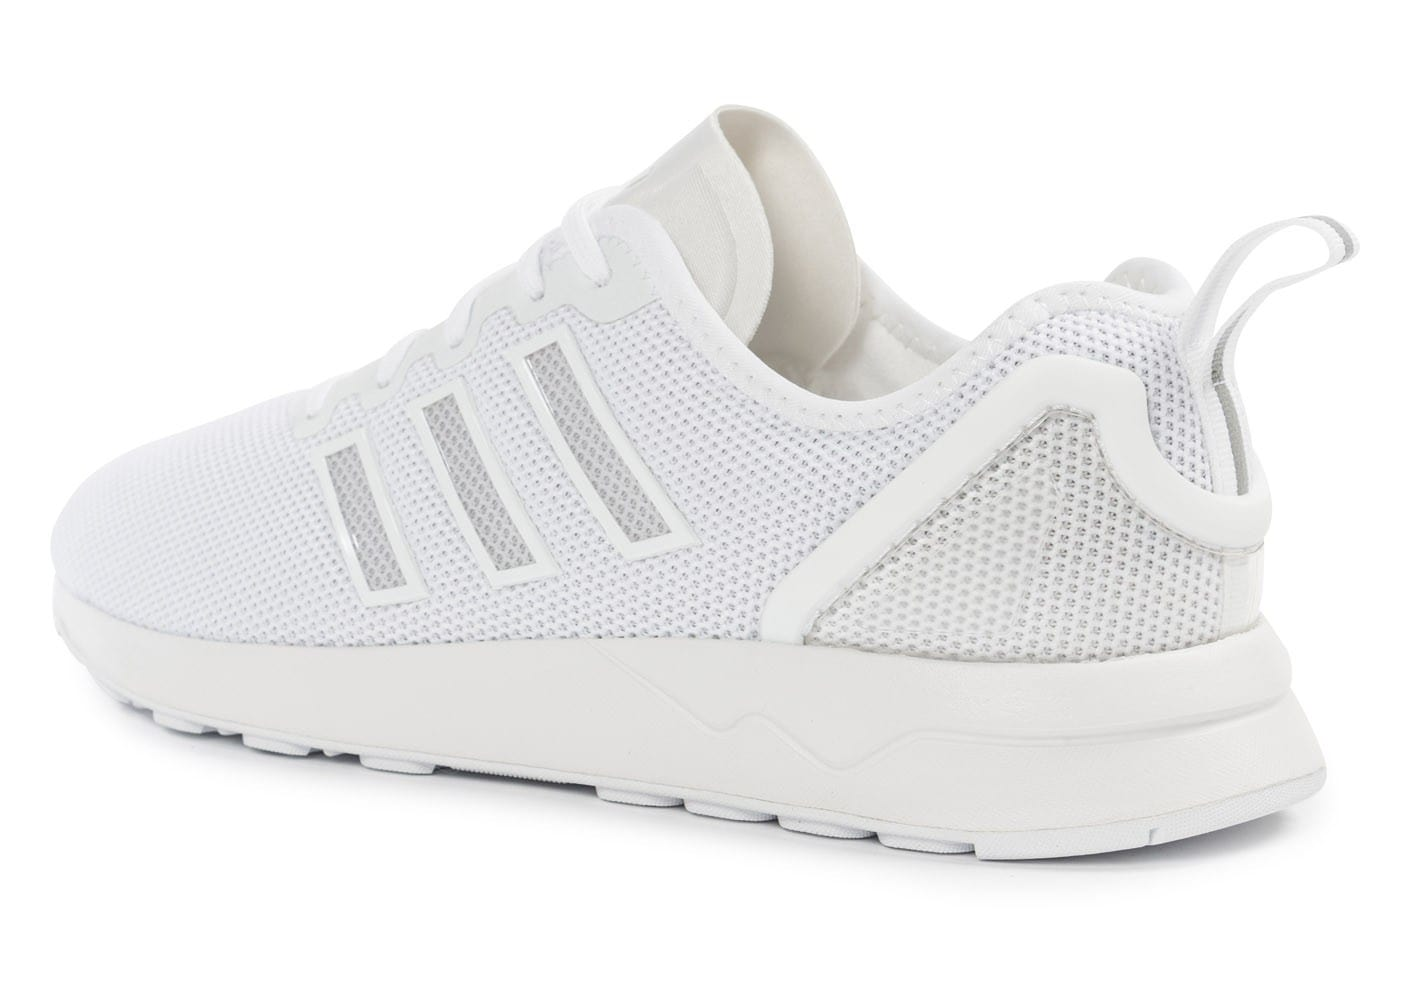 adidas Zx Flux ADV Racer blanche - Chaussures Baskets homme ...